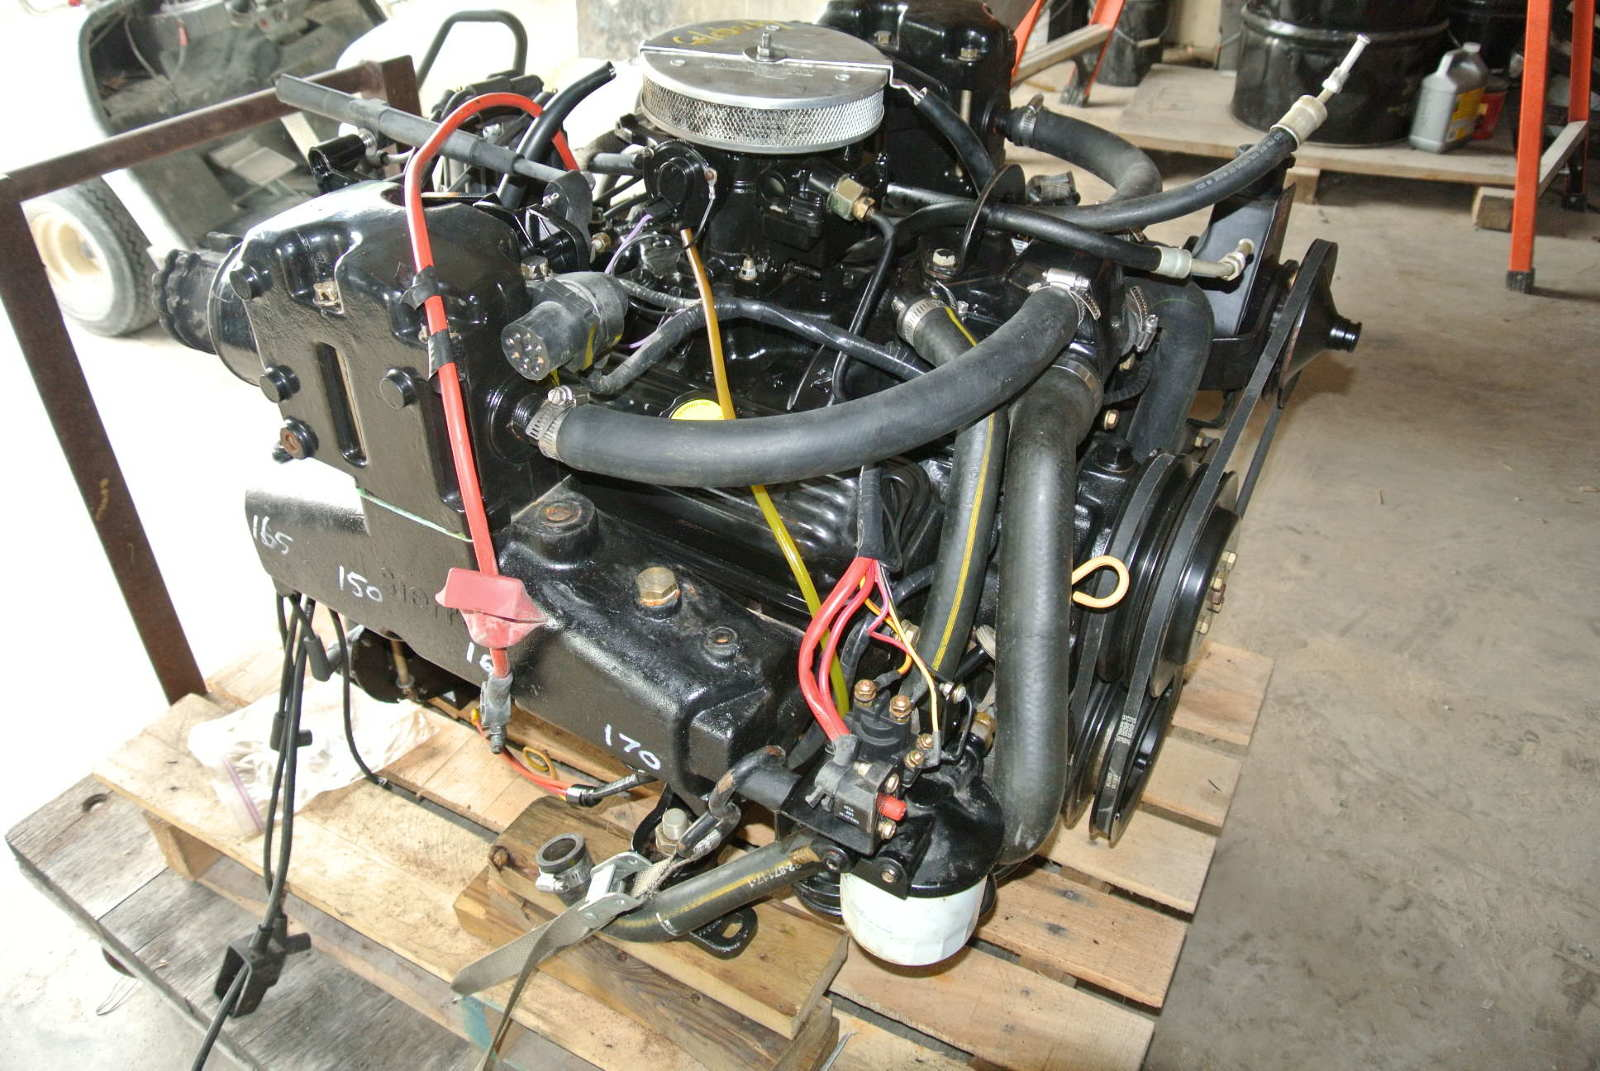 5364 mercruiser 50 engine v8 chevy 305 motor complete plug n go mercruiser 5 0 engine v8 chevy 305 motor complete plug n go 1982 260 mercruiser engine wiring diagram at readyjetset.co